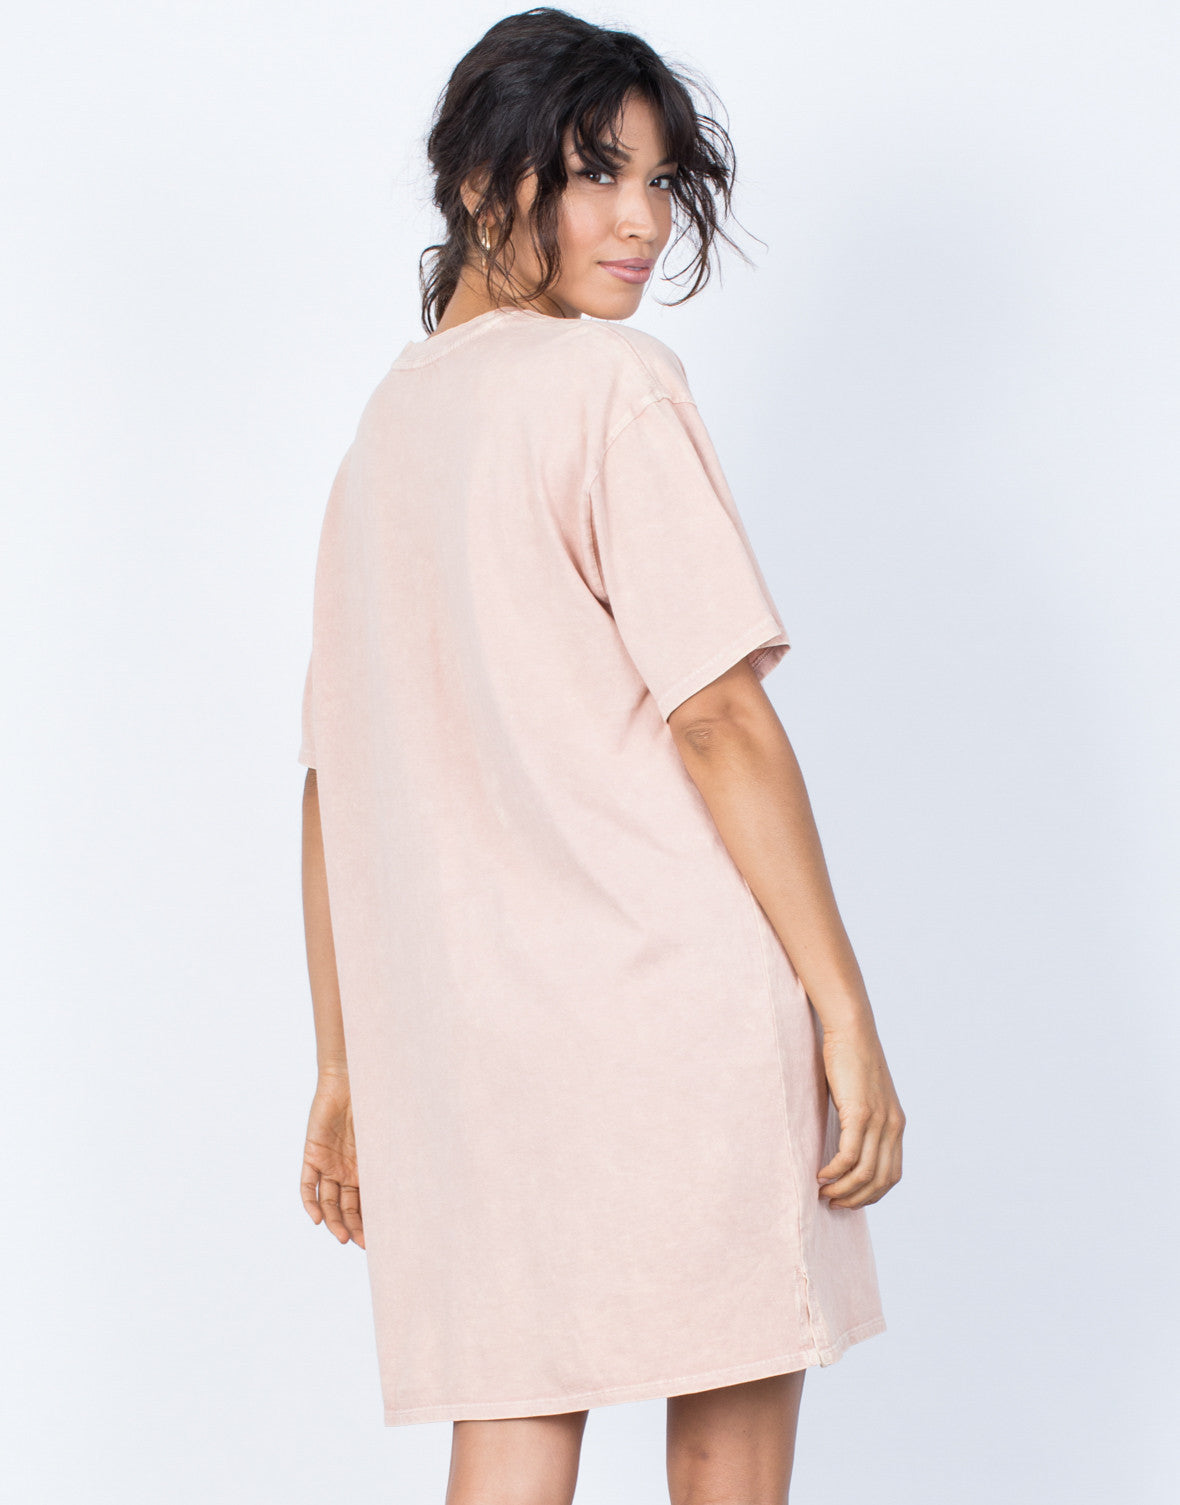 Dusty Peach Andy Tee Dress - Back View